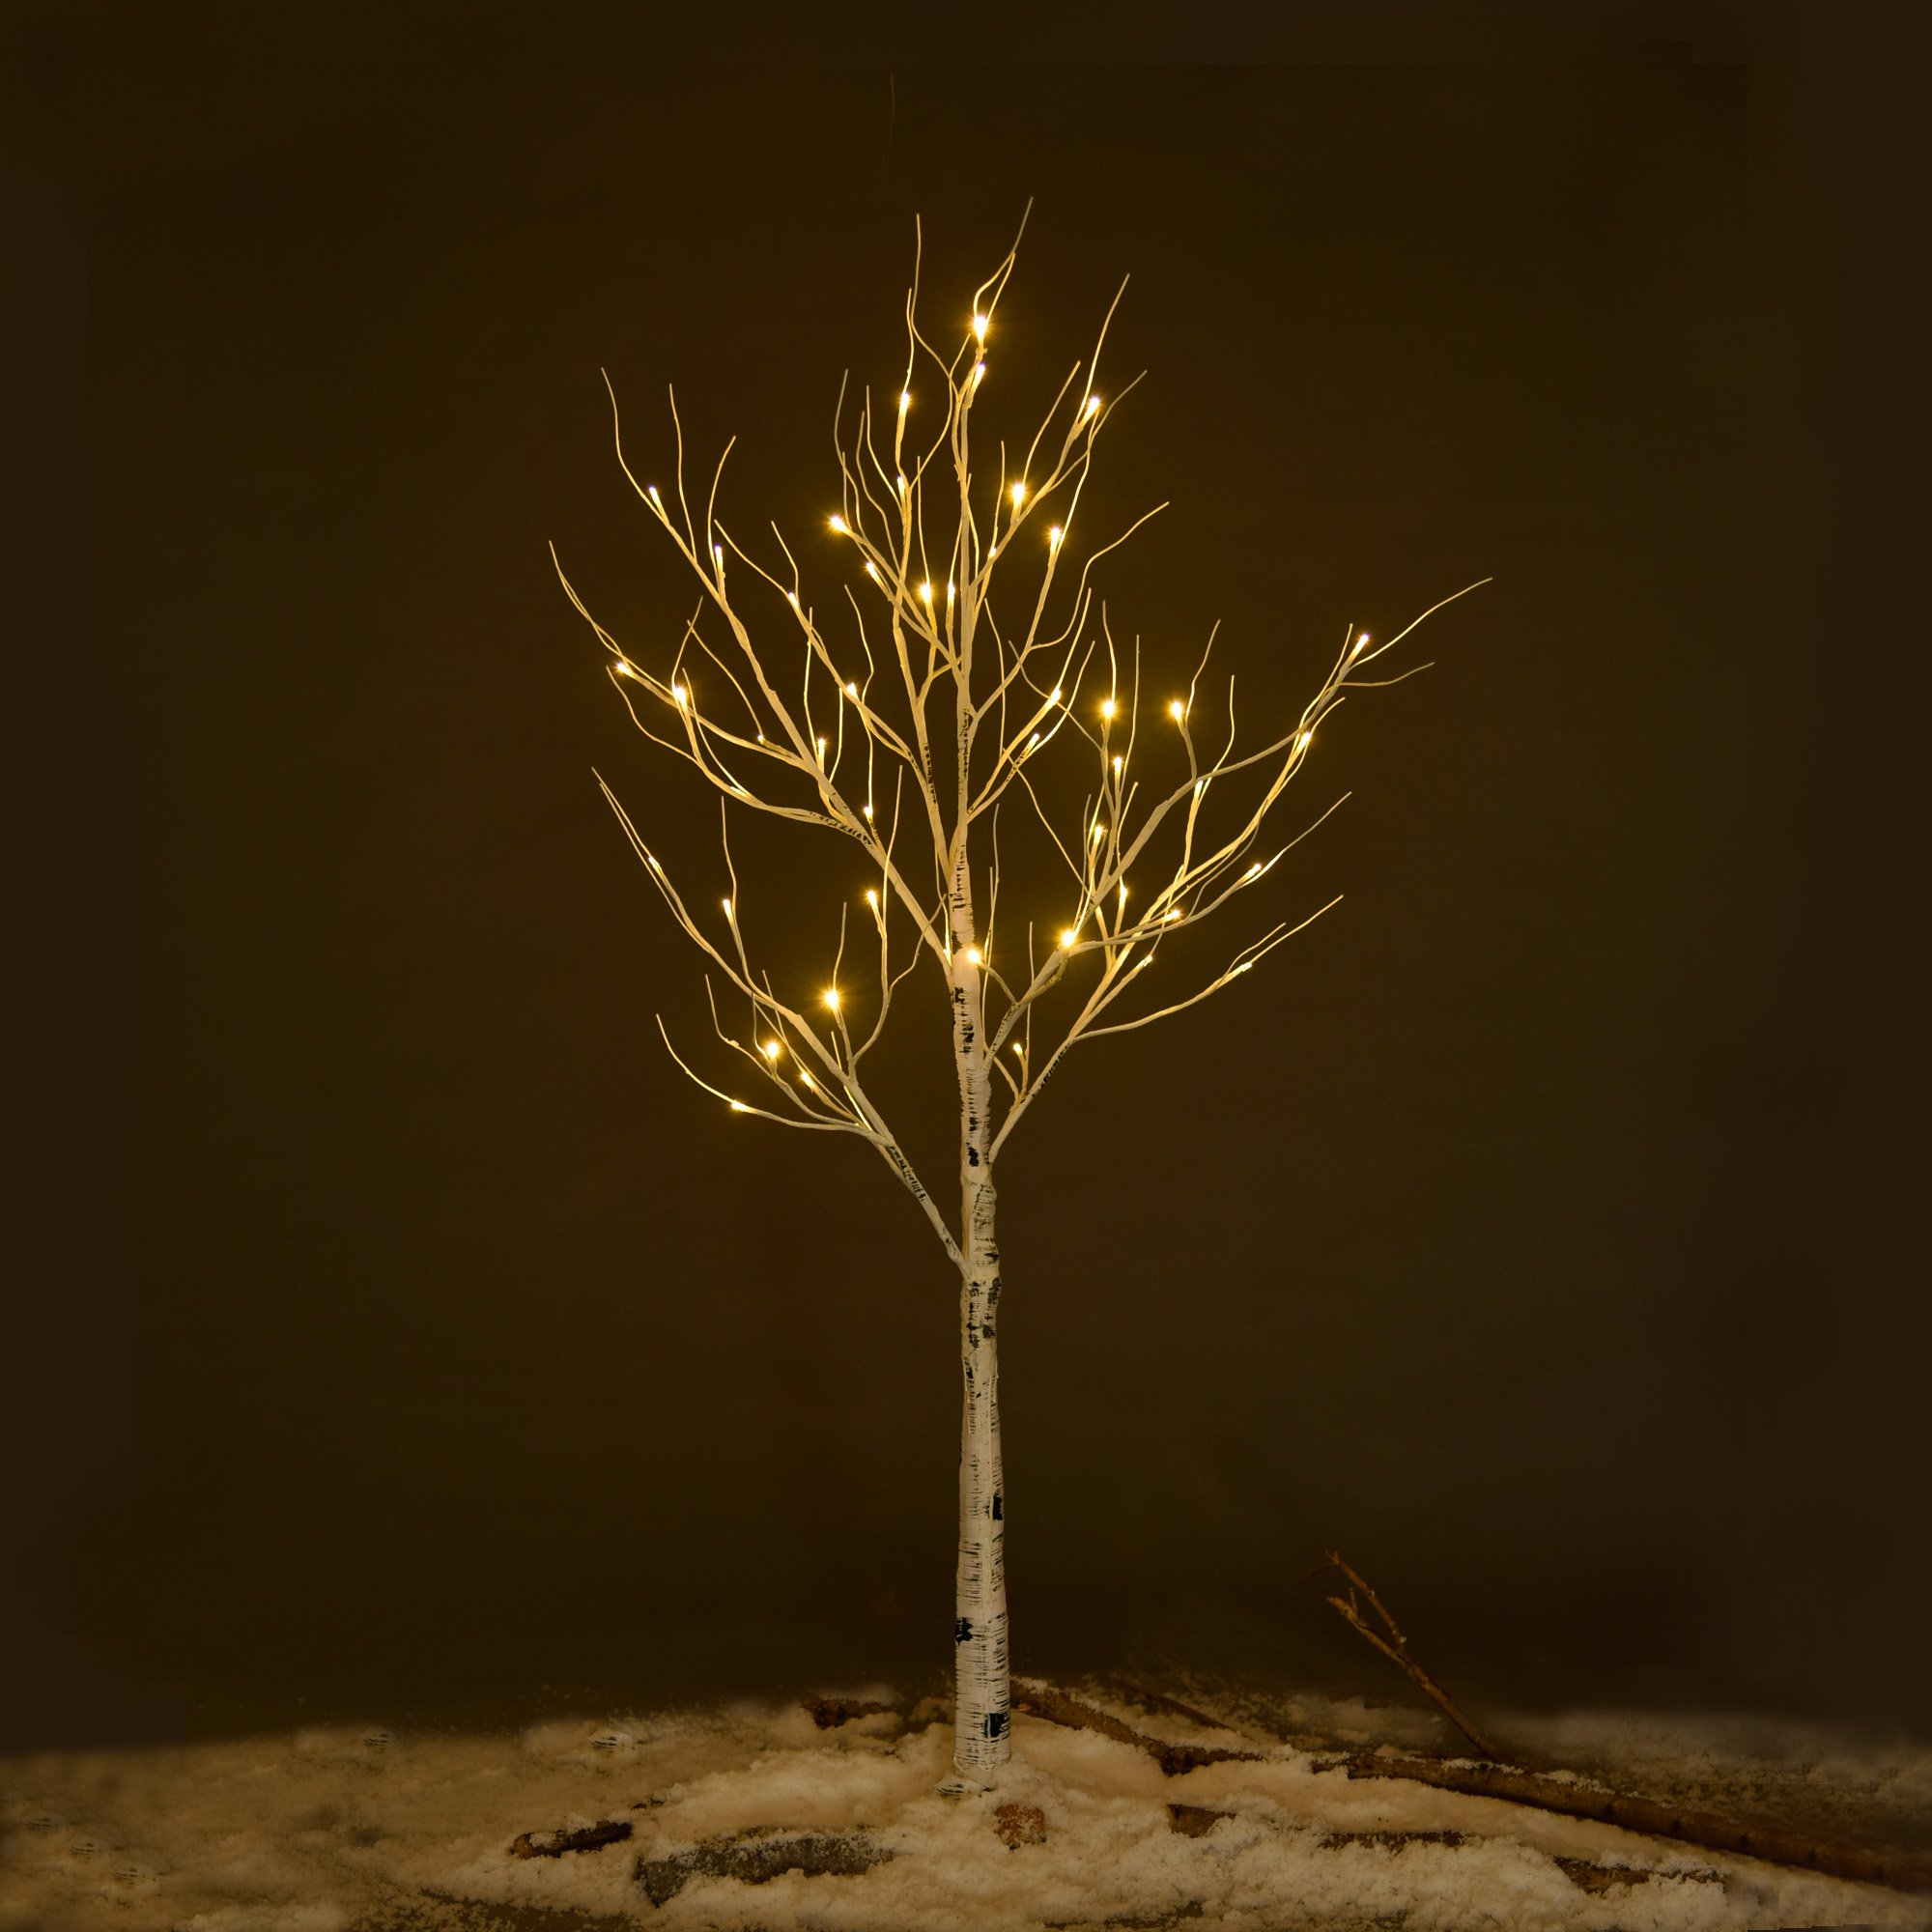 GOJOOASIS 4 Feet Lighted Birch Tree 48 LED Lights Warm White for Home Christmas Wedding Festival Party Decoration,Indoor and Outdoor Use